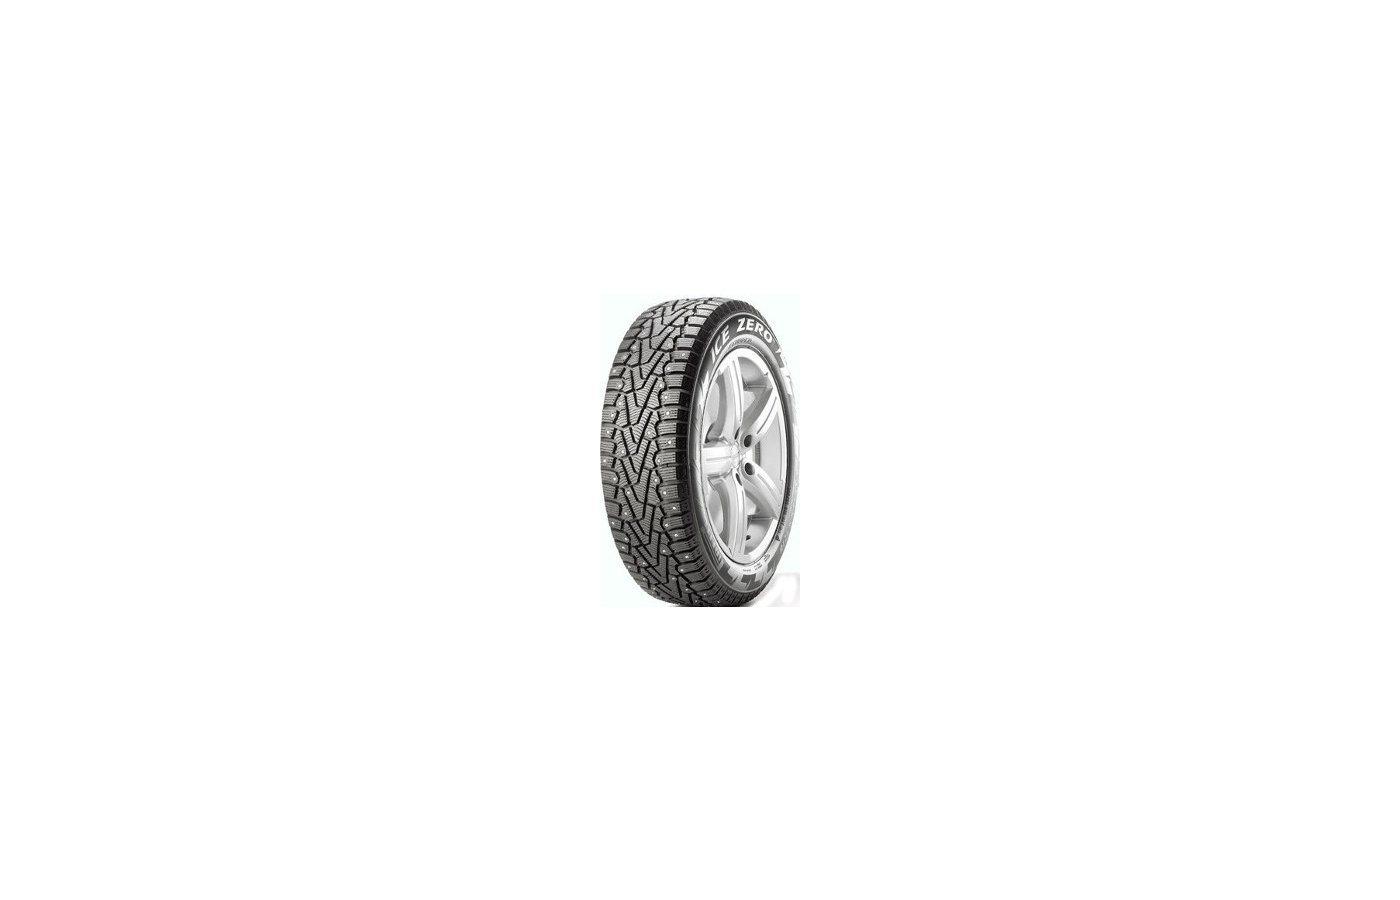 Шина Pirelli Winter Ice Zero 245/40 R18 TL 97H XL шип